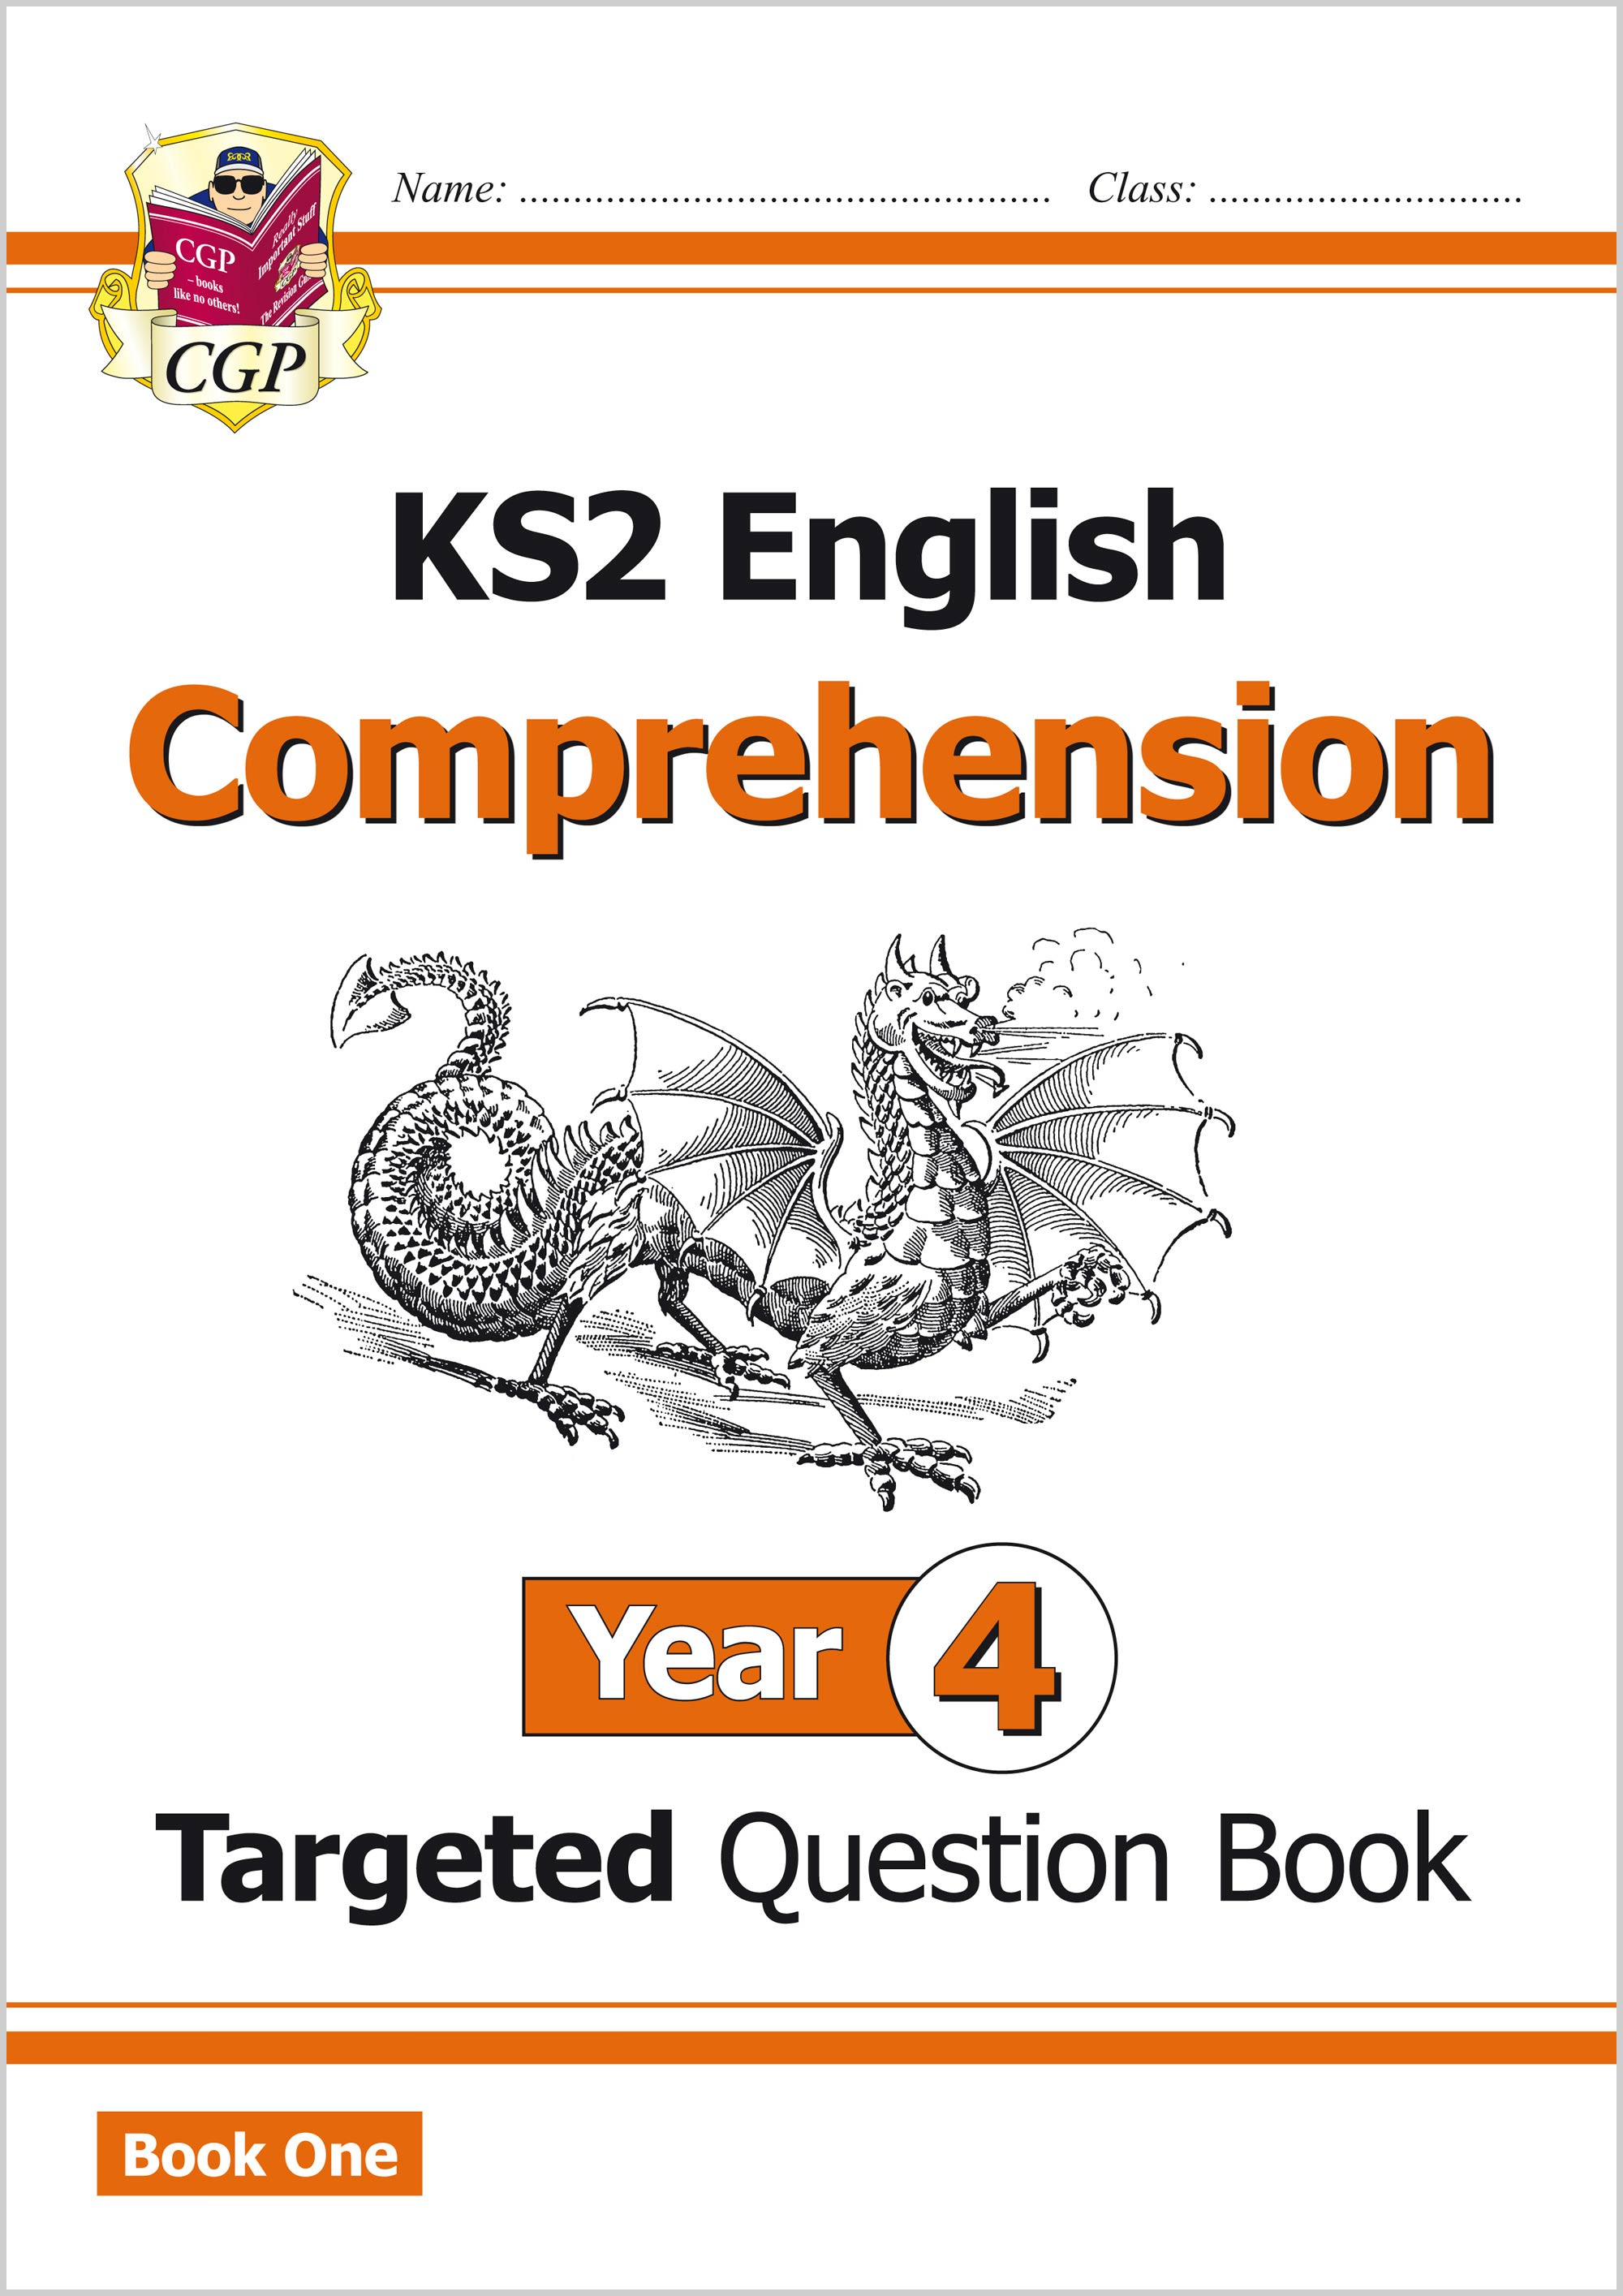 E4CW21 - New KS2 English Targeted Question Book: Year 4 Comprehension - Book 1